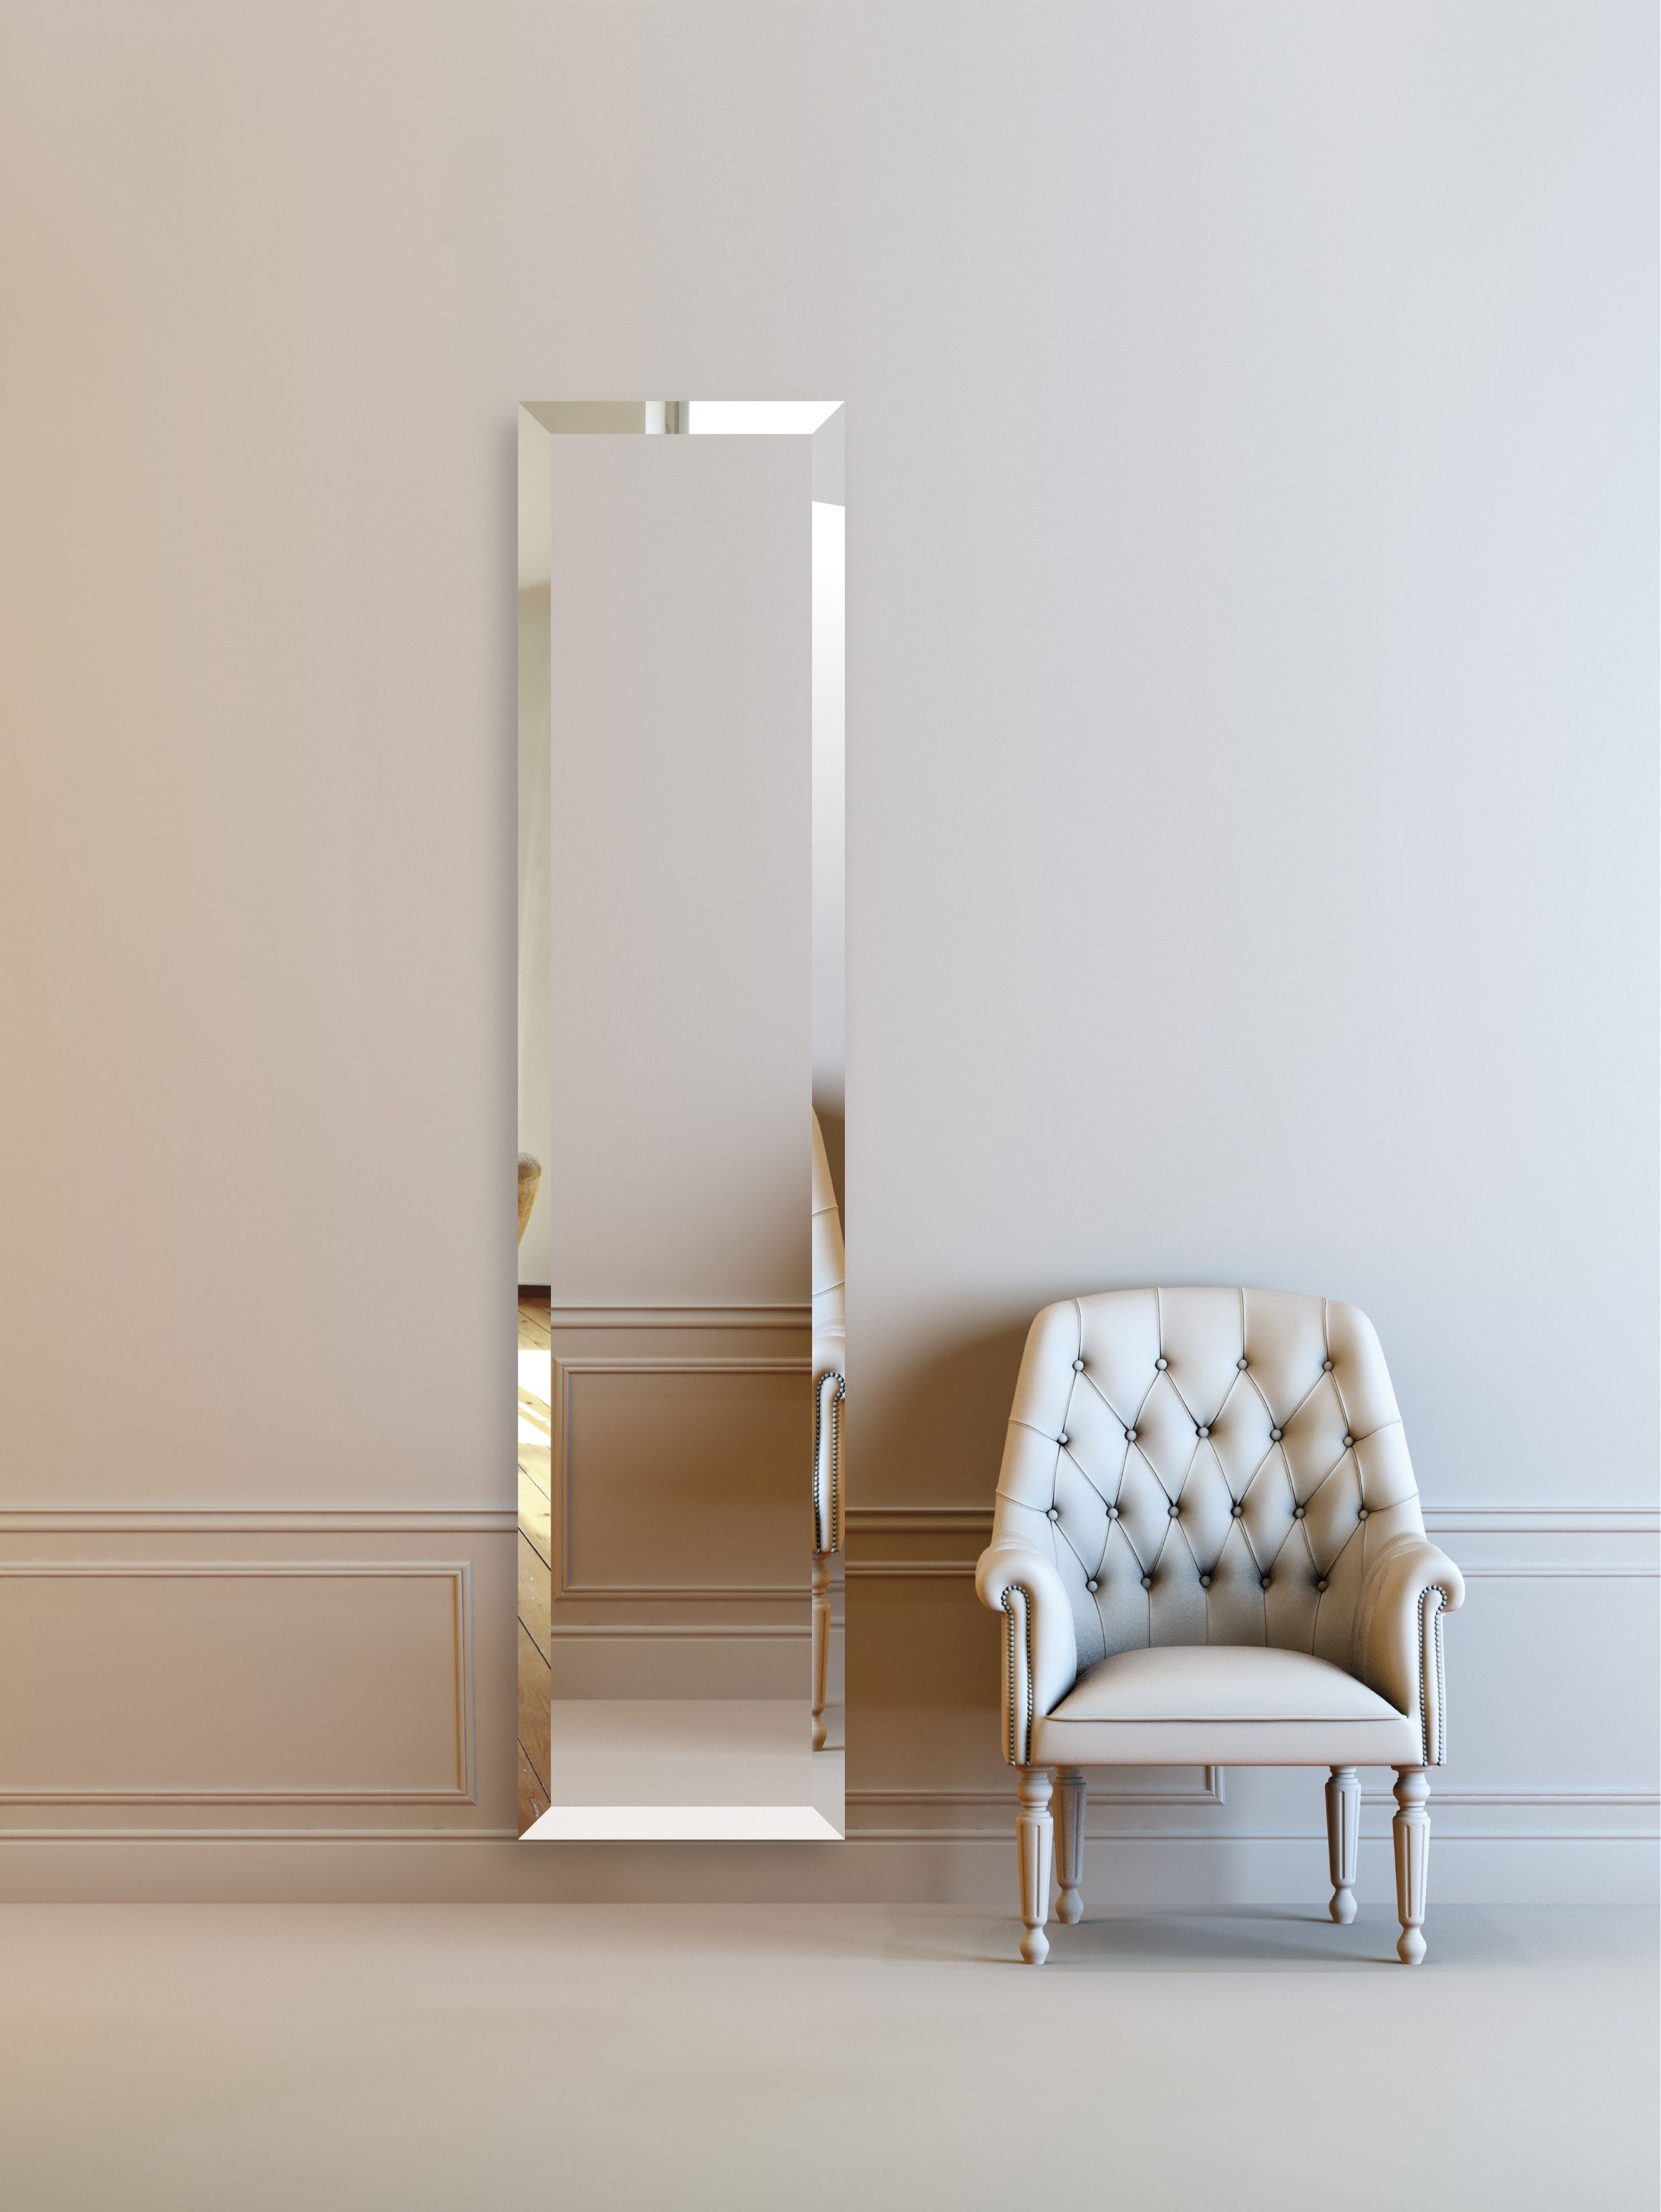 cinier mirror radiator electric or hydronic version made. Black Bedroom Furniture Sets. Home Design Ideas